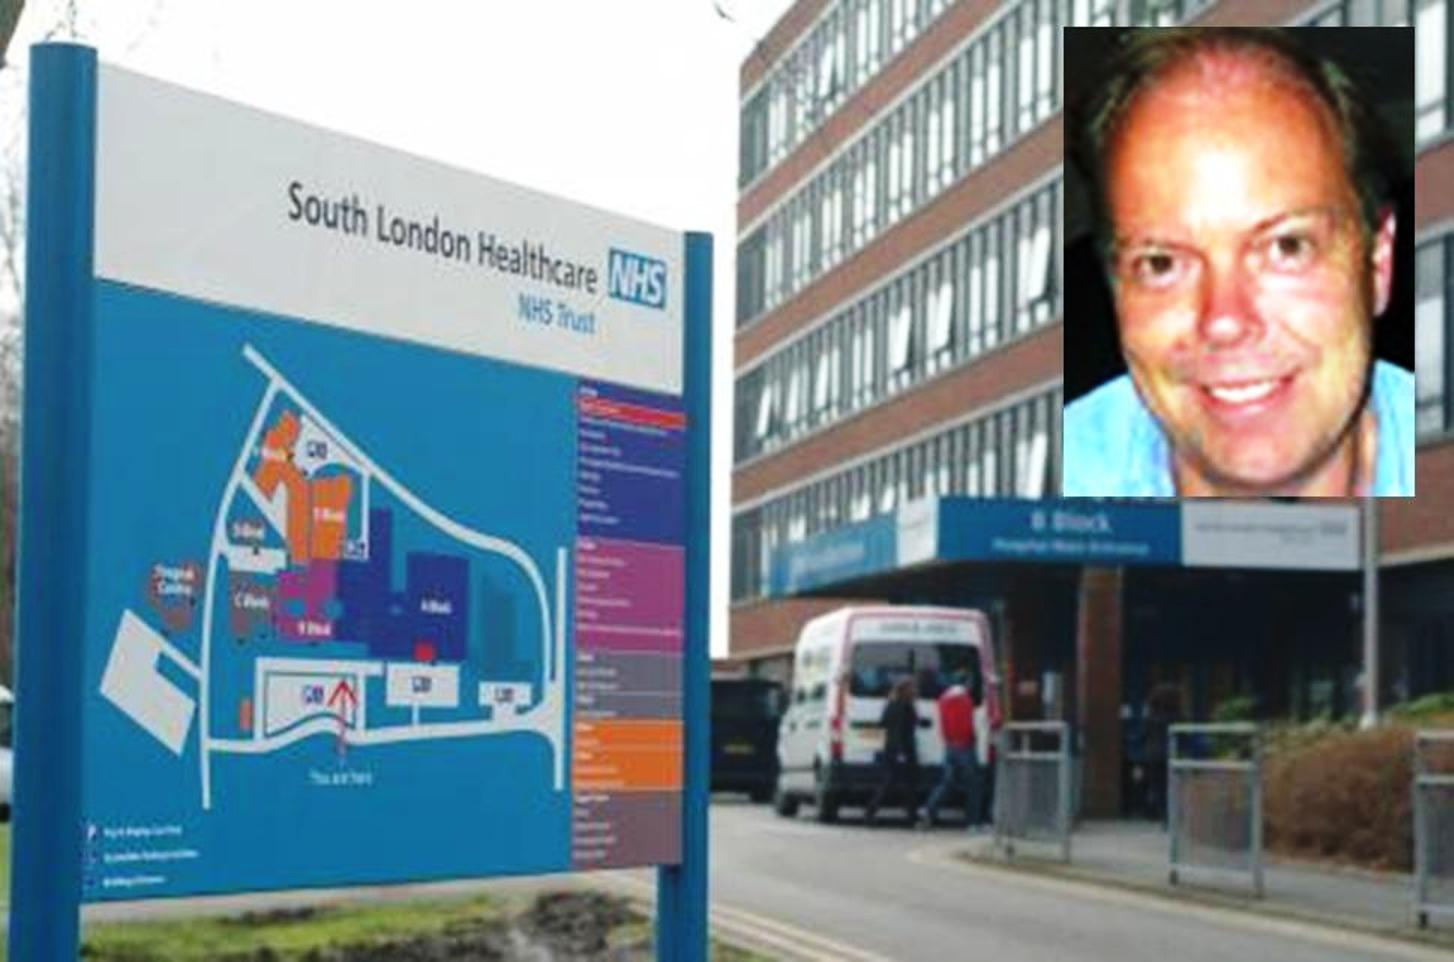 Former gynaecologist Rod Irvine (pictured) worked at Queen Mary's Hospital in Sidcup